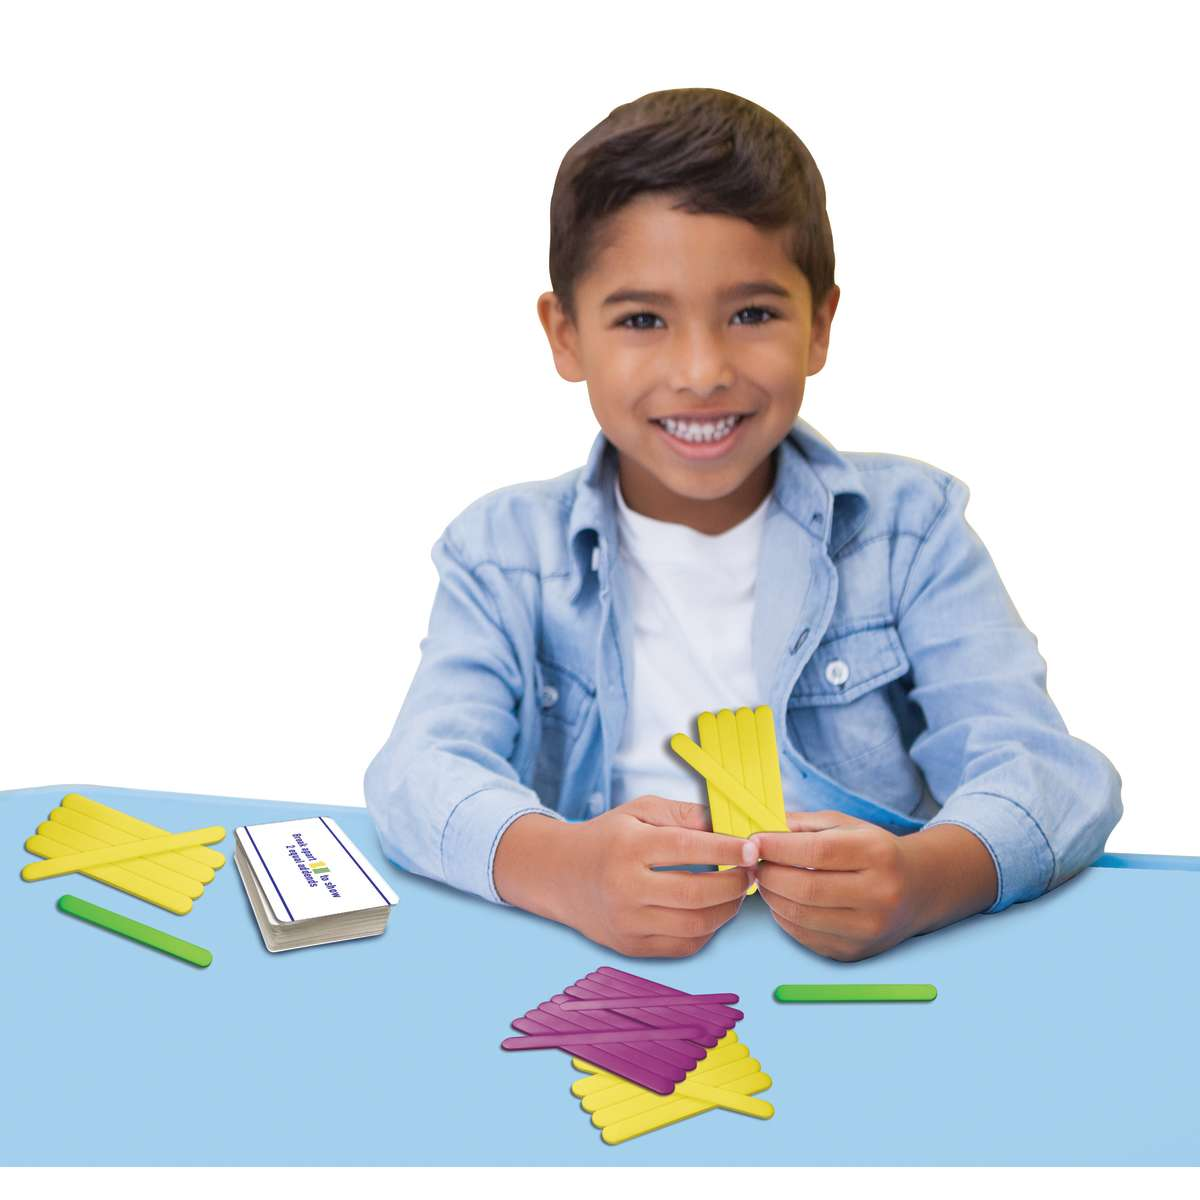 Sensational Math Hands On Tally Marks Activity Card Sets